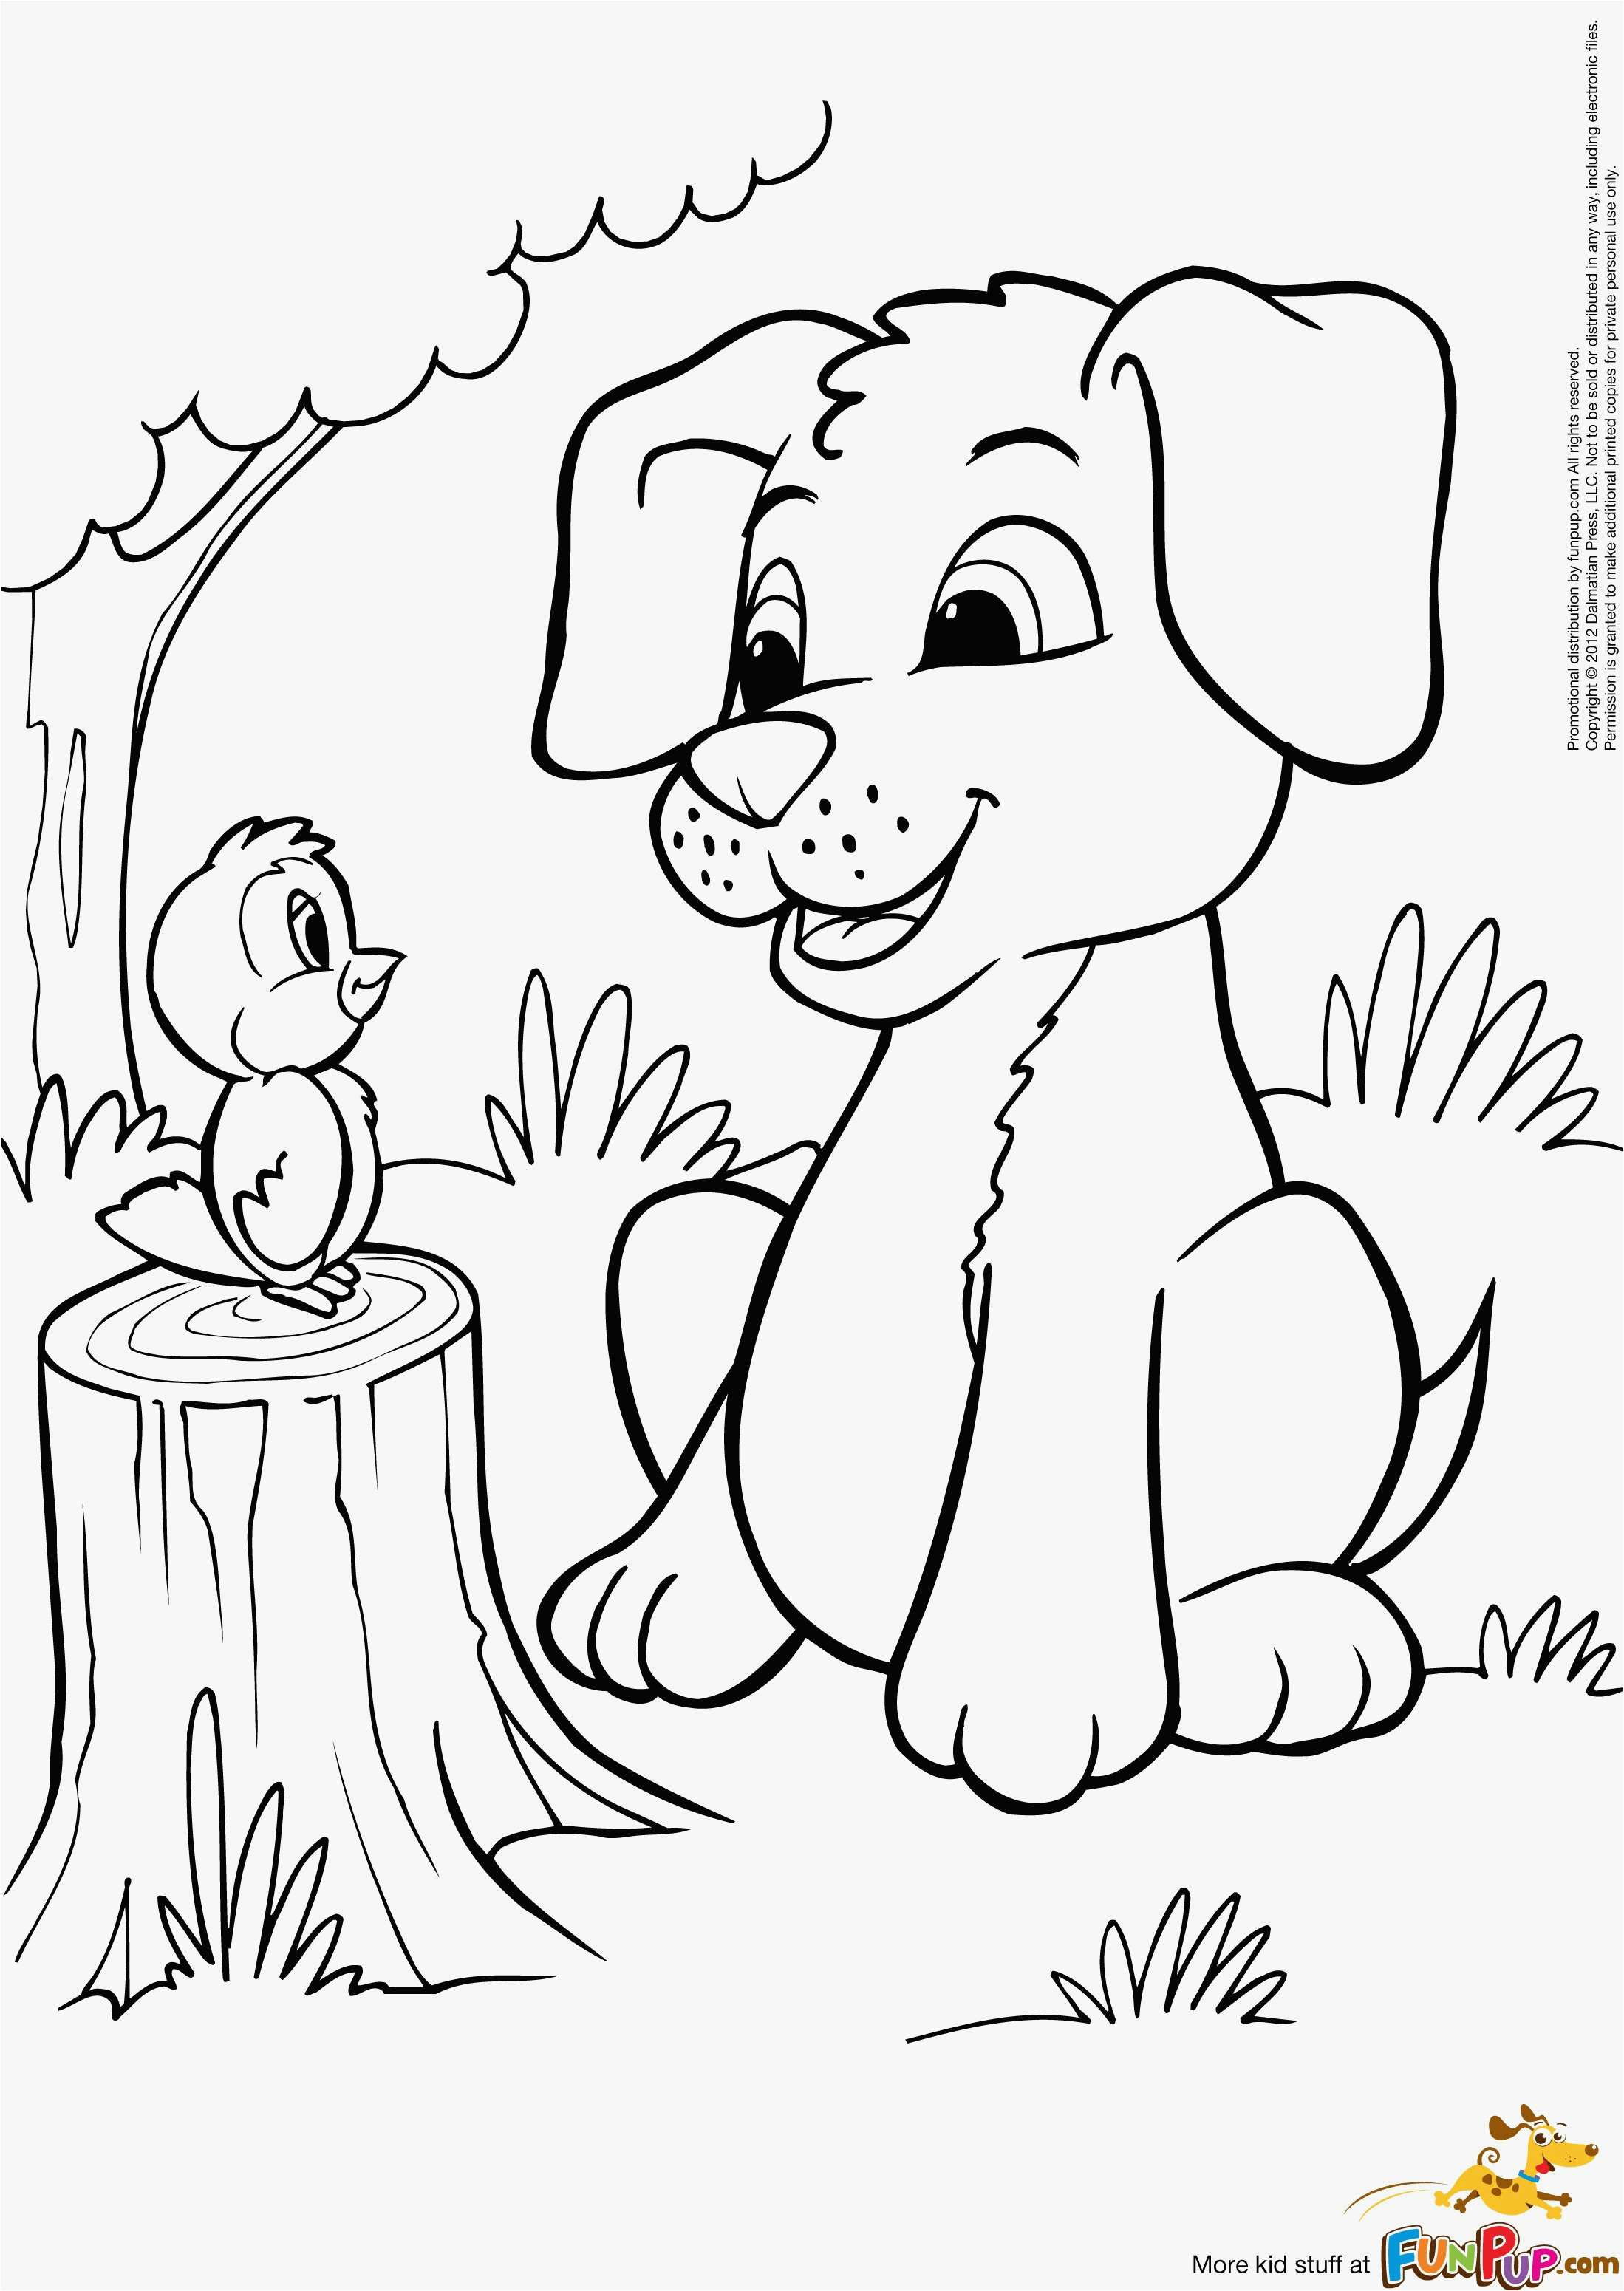 Coloring Pages Of Kittens  Gallery 14b - Free For kids